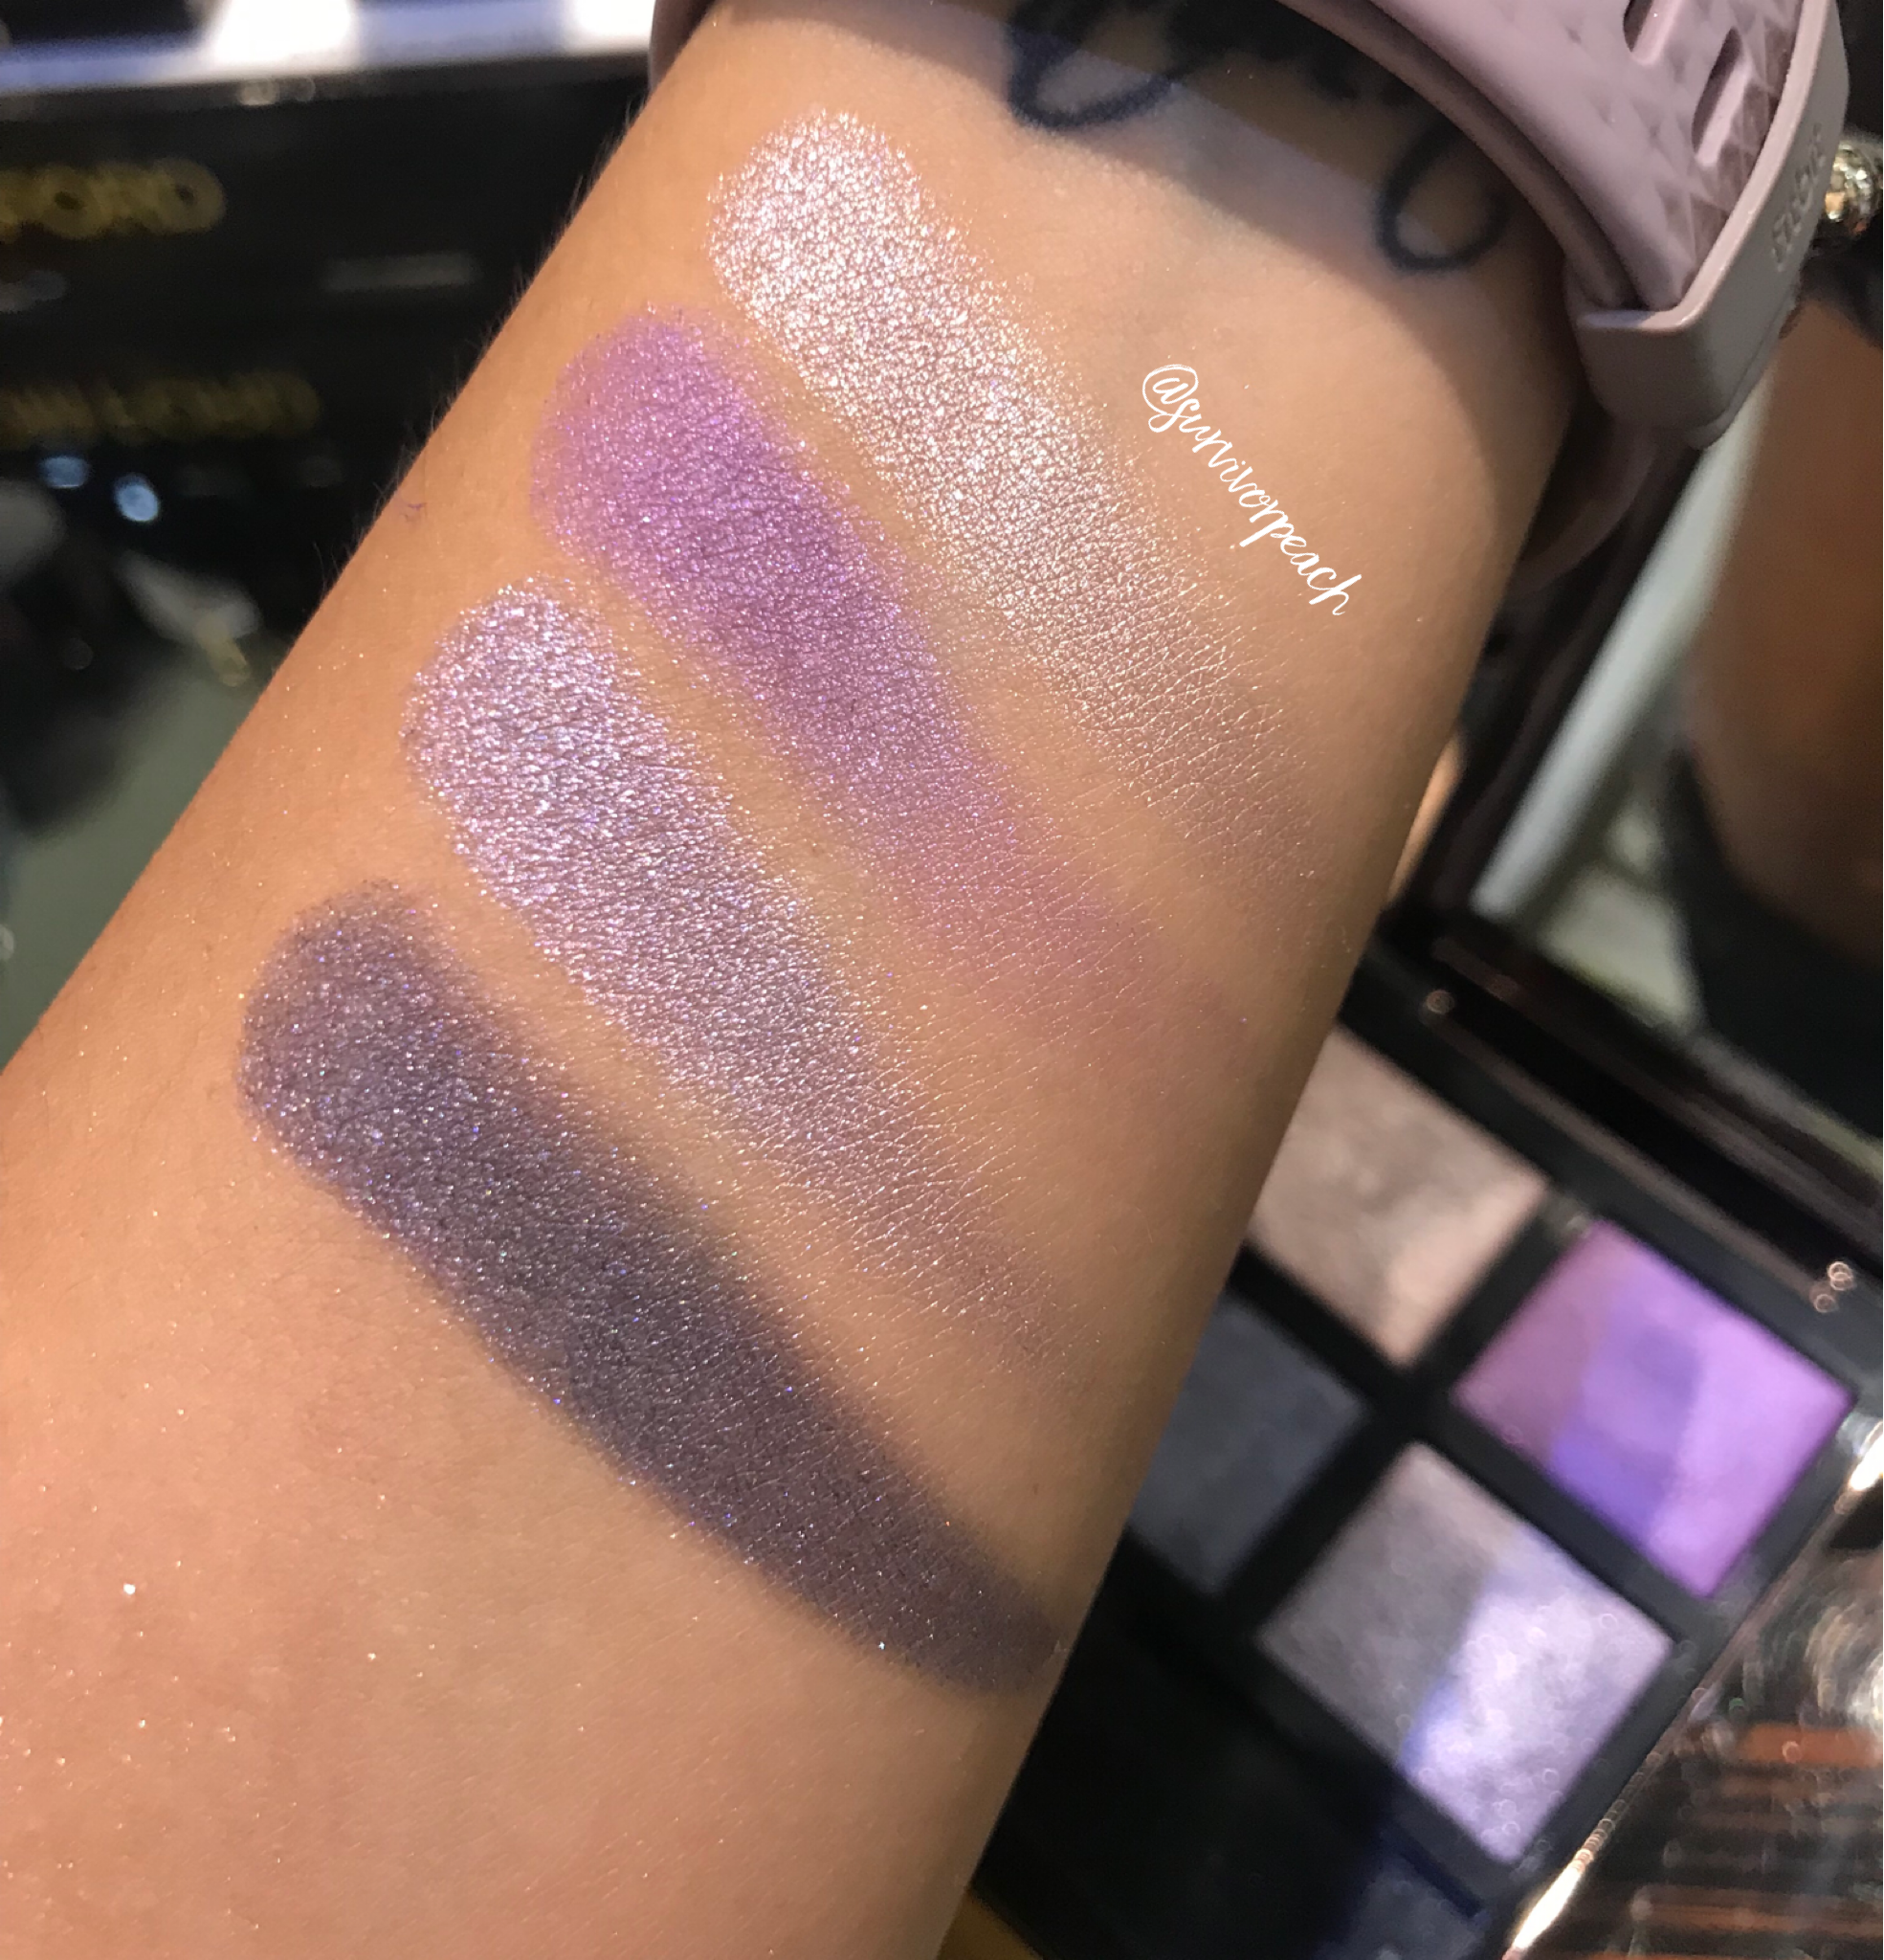 Swatches of the Tom Ford Eye Quad in 28 Day Dream